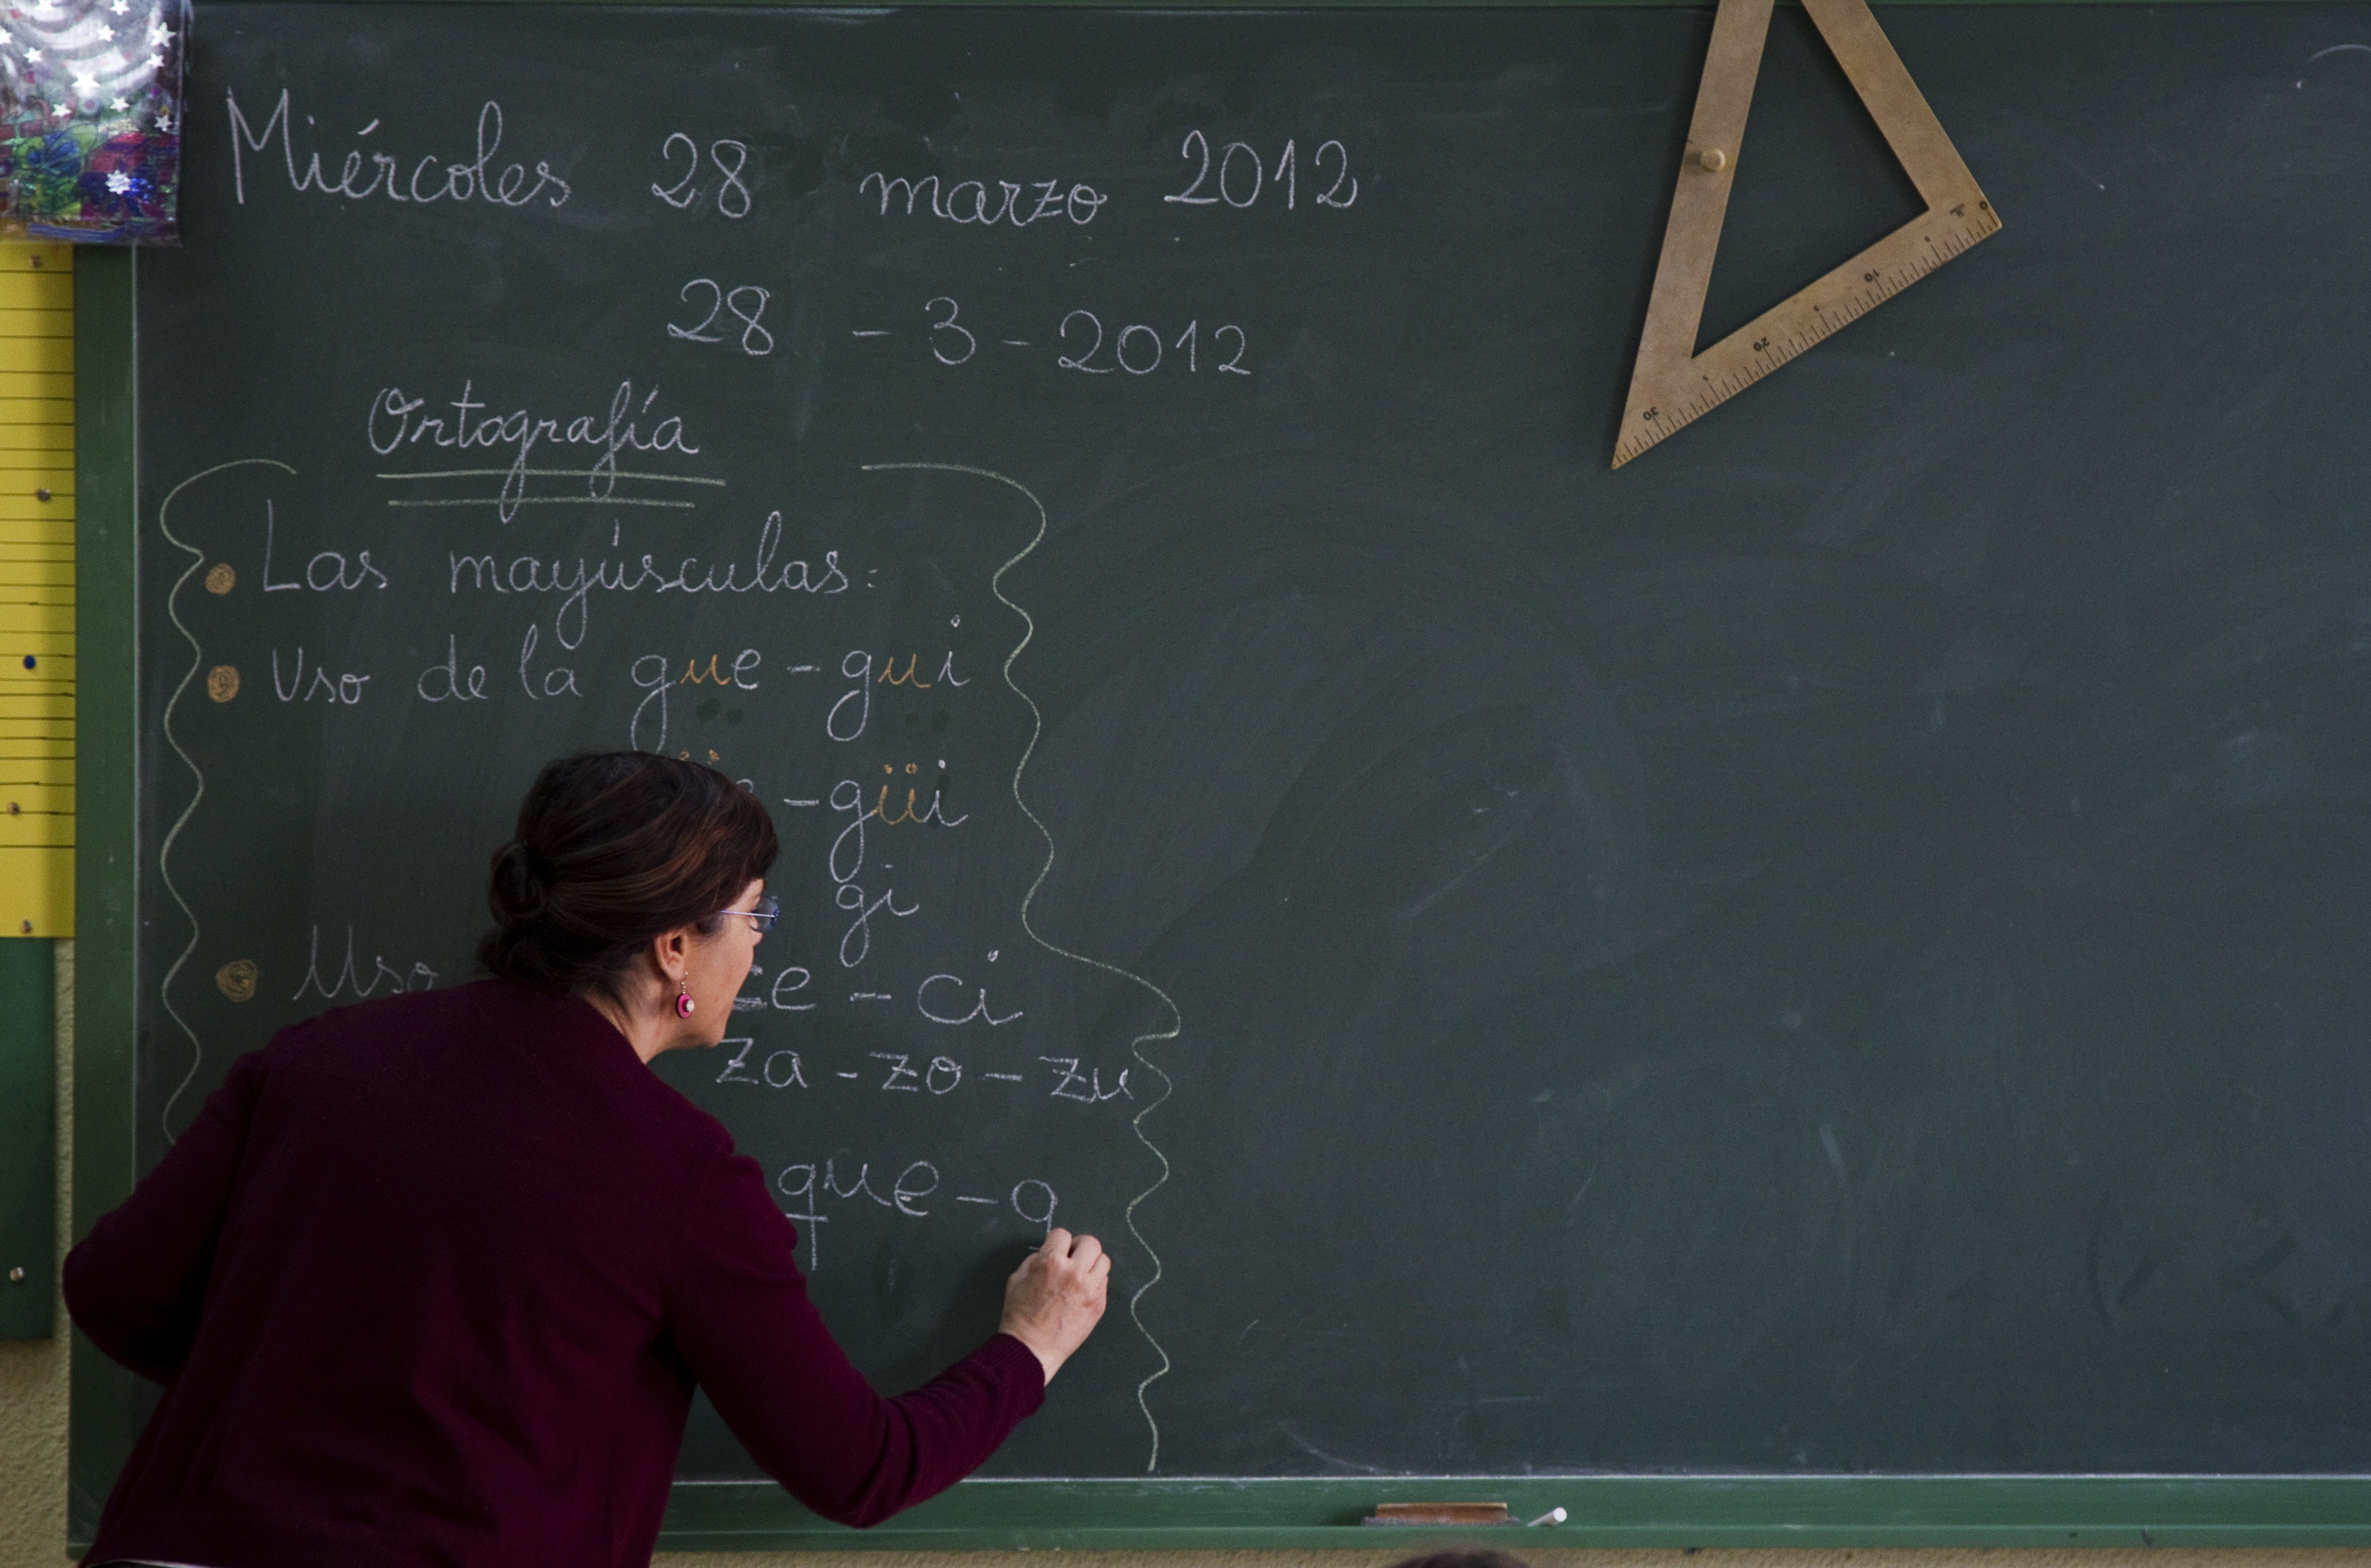 A teacher writes on a blackboard during class at a public school in Madrid, March 28, 2012. Spain will announce some of its deepest budget cuts ever on Friday, though evaporating growth prospects mean it is likely to fall short of what is needed to meet strict public deficit targets. Cuts in public education have sparked nationwide protests and more cuts are likely to be handed down by autonomous regions after the newly installed conservative central government presents its 2012 budget on Friday. REUTERS/Sergio Perez (SPAIN - Tags: EDUCATION BUSINESS SOCIETY POLITICS) - RTR3005W